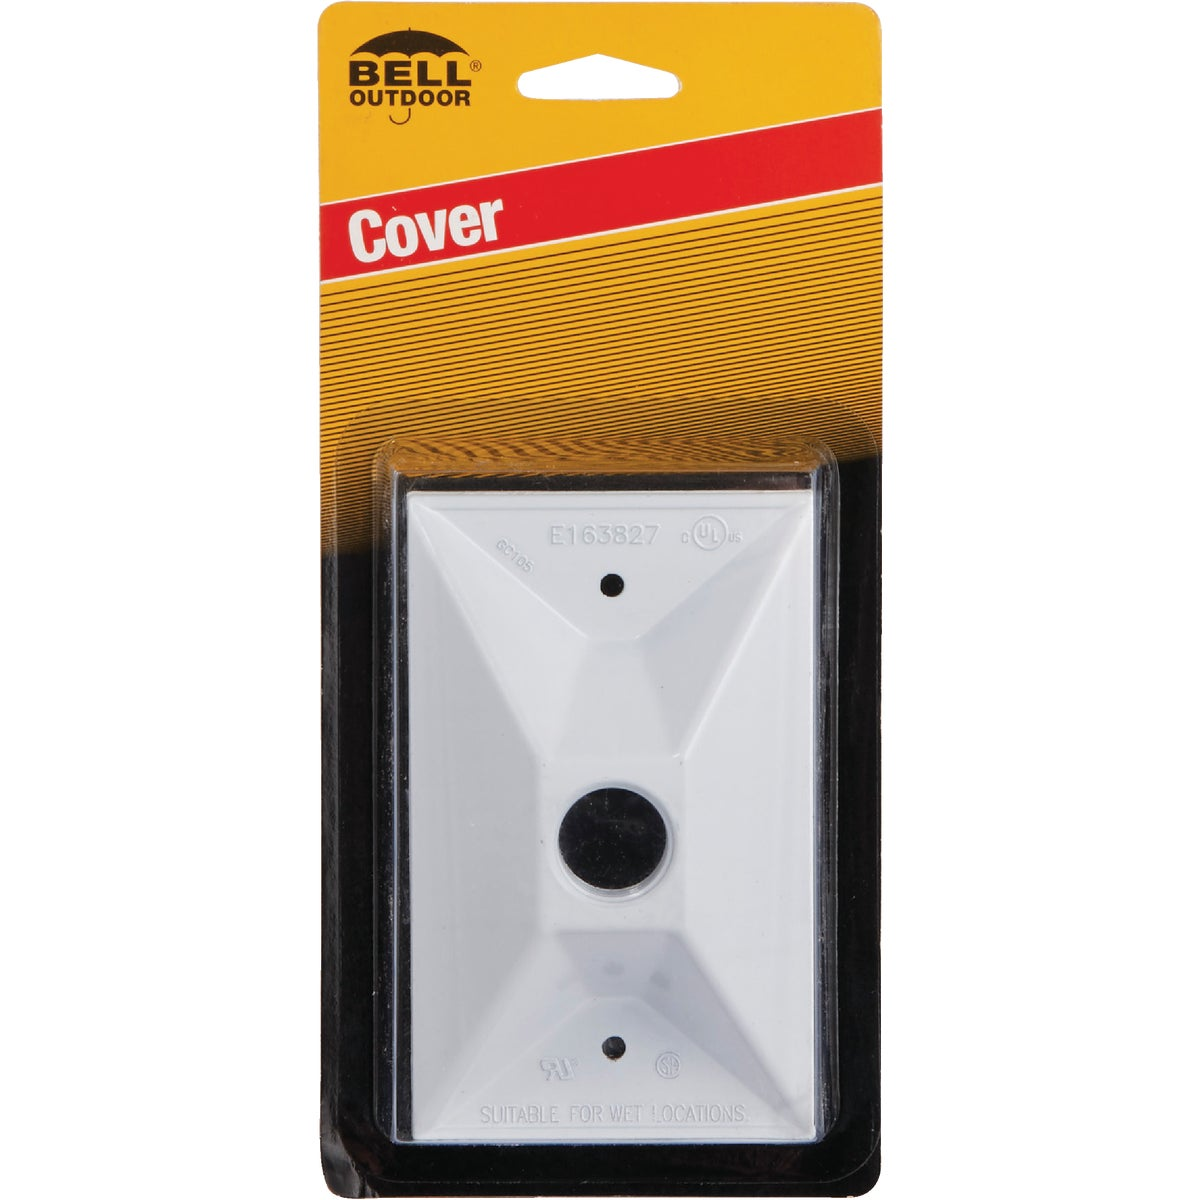 WHT OUTDOOR REC COVER - 5186-6 by Hubbell